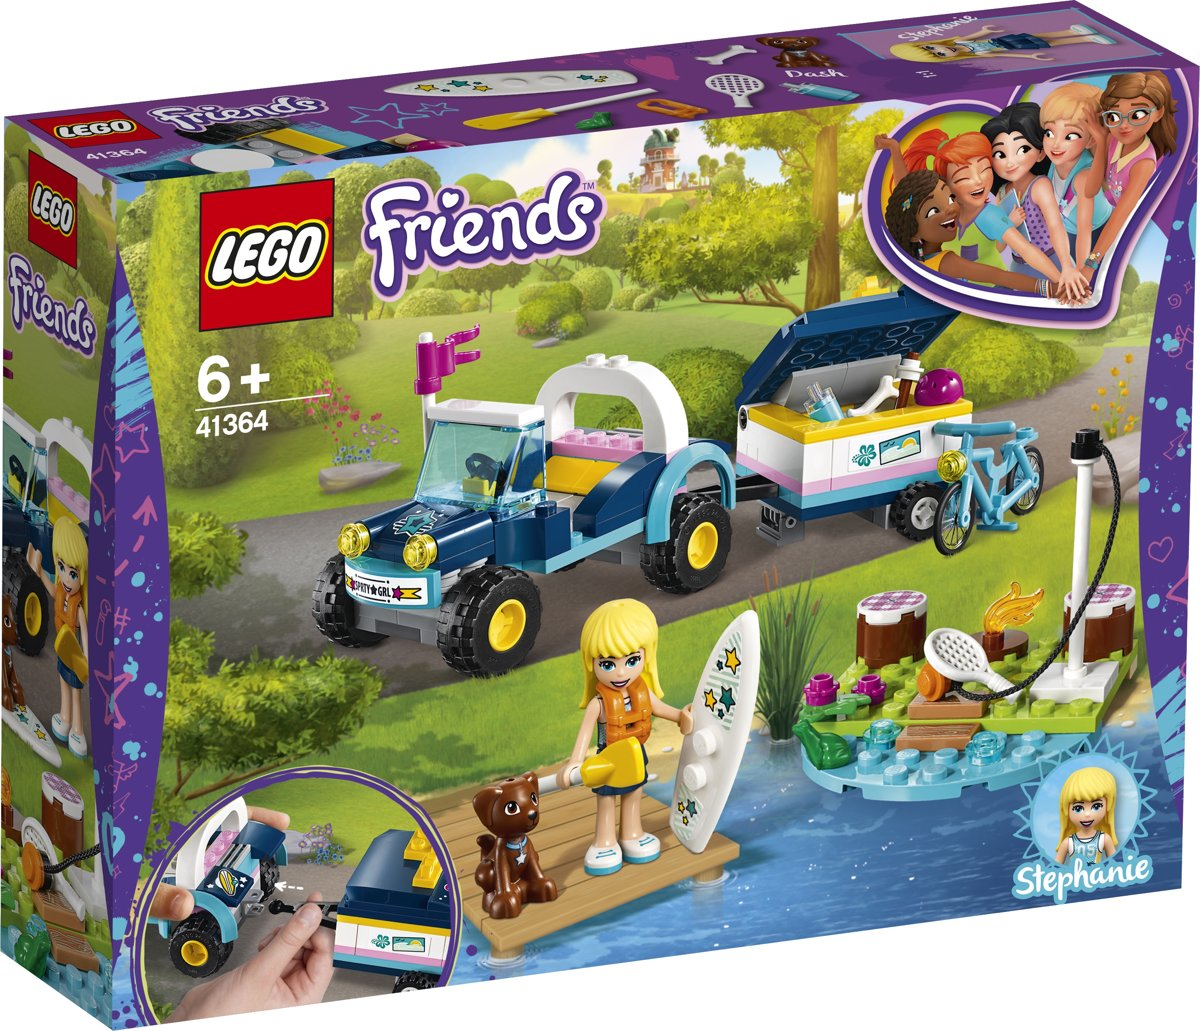 LEGO Friends Stephanies Buggy en Aanhanger - 41364